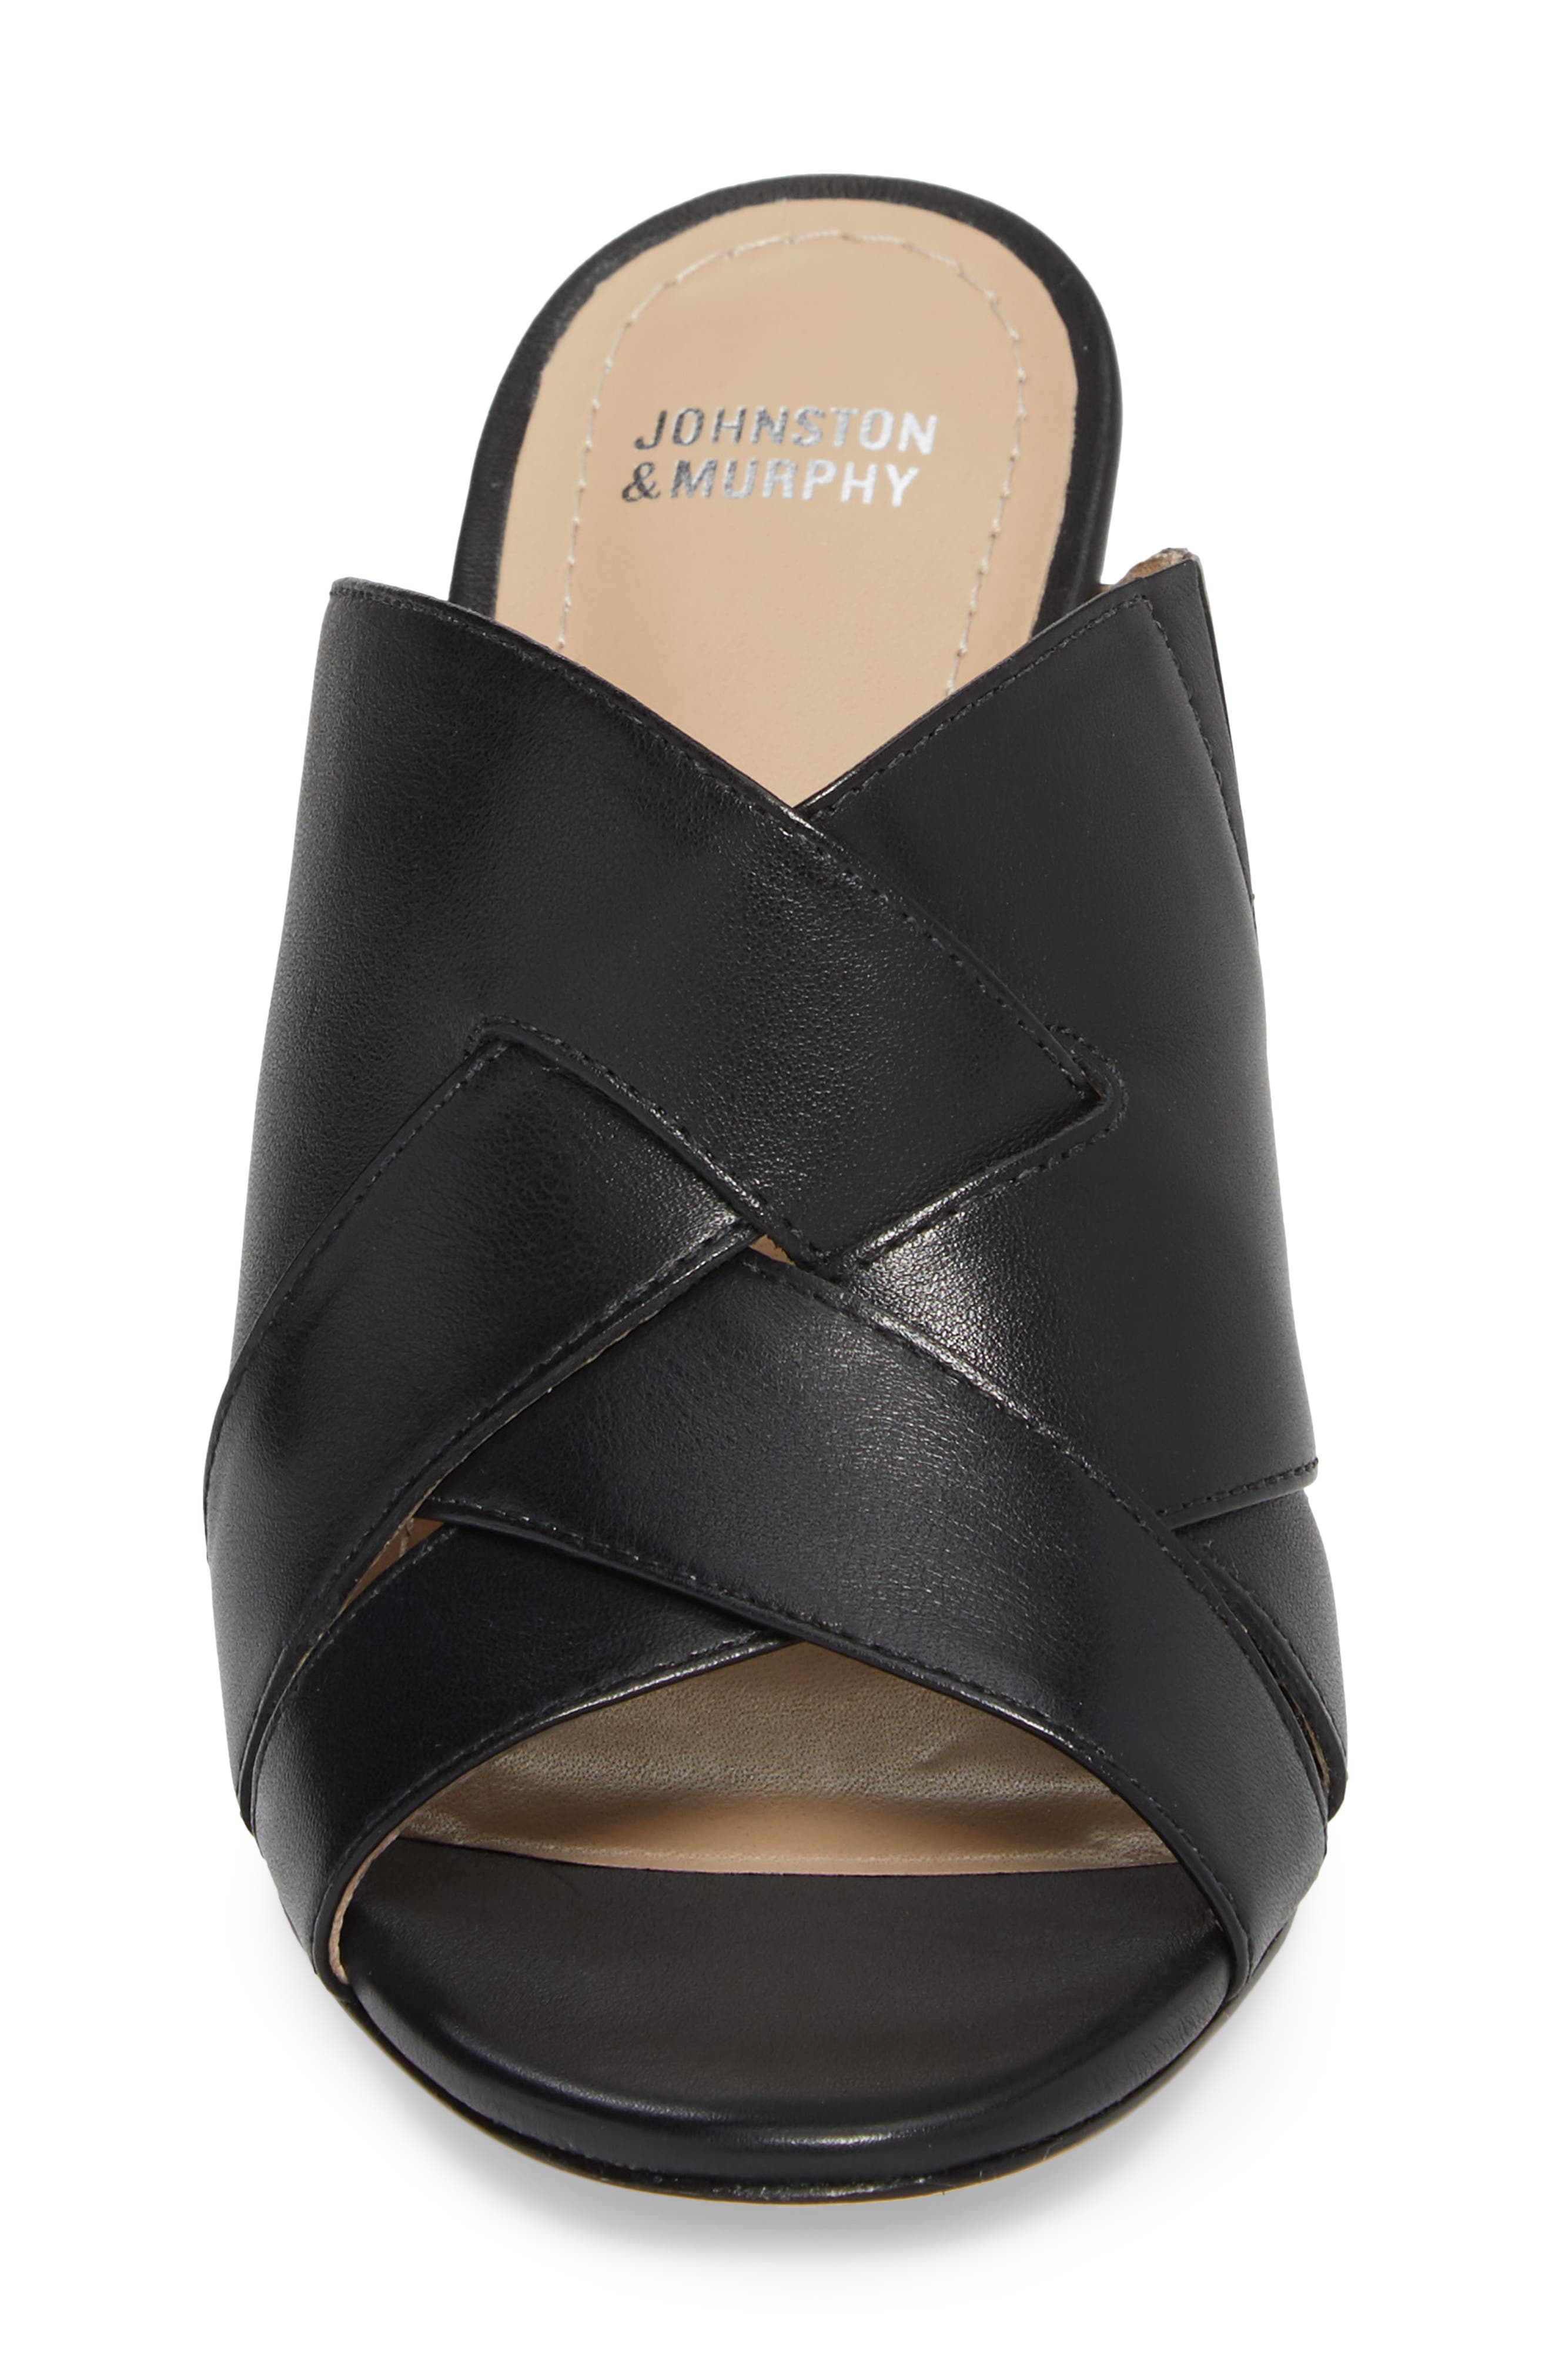 Carrie Mule Sandal,                             Alternate thumbnail 4, color,                             BLACK LEATHER